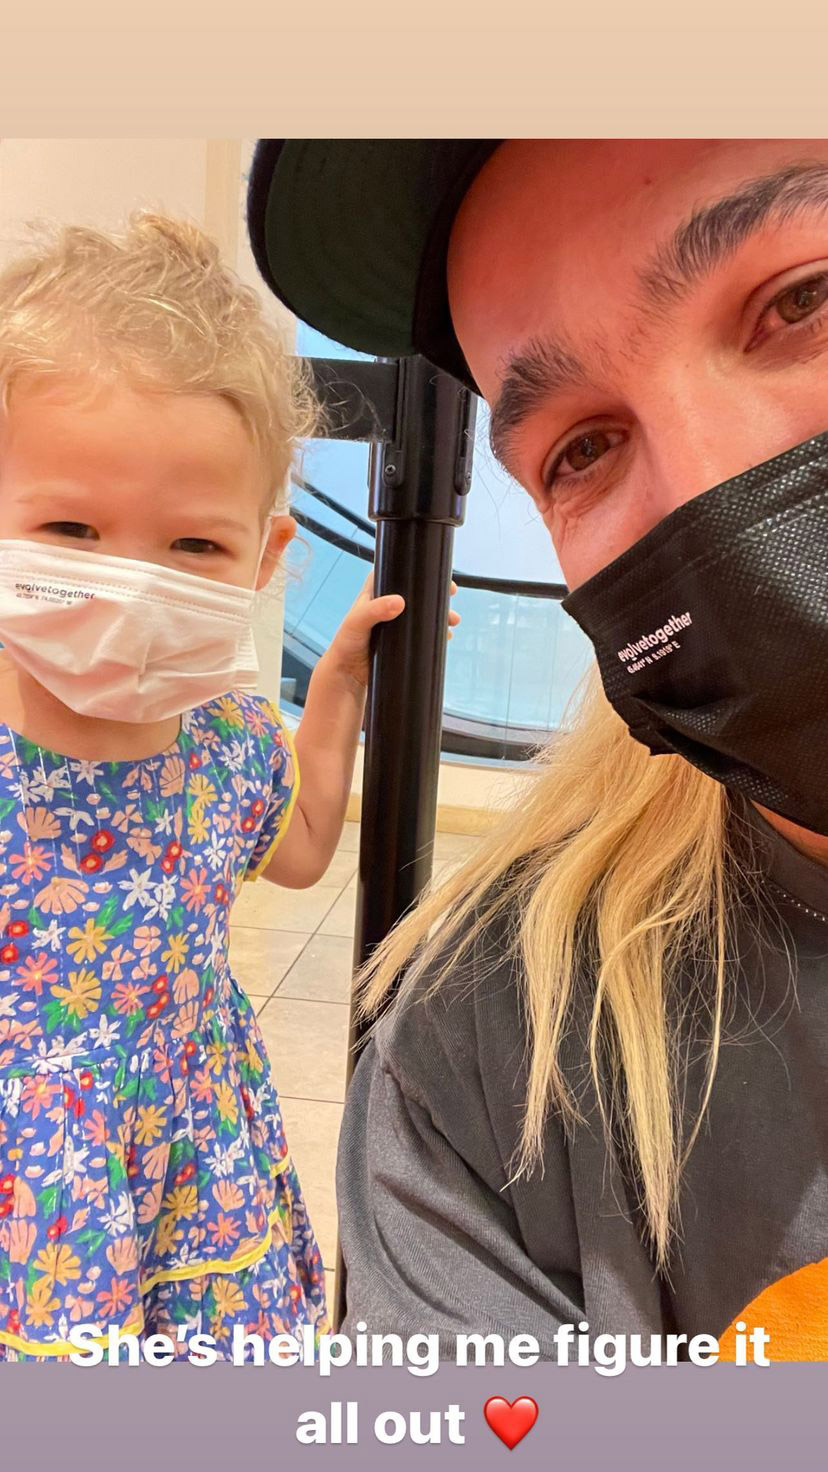 Pete Wentz and Meagan Camper Share Rare Photos of Daughter Marvel Jean on Her 3rd Birthday